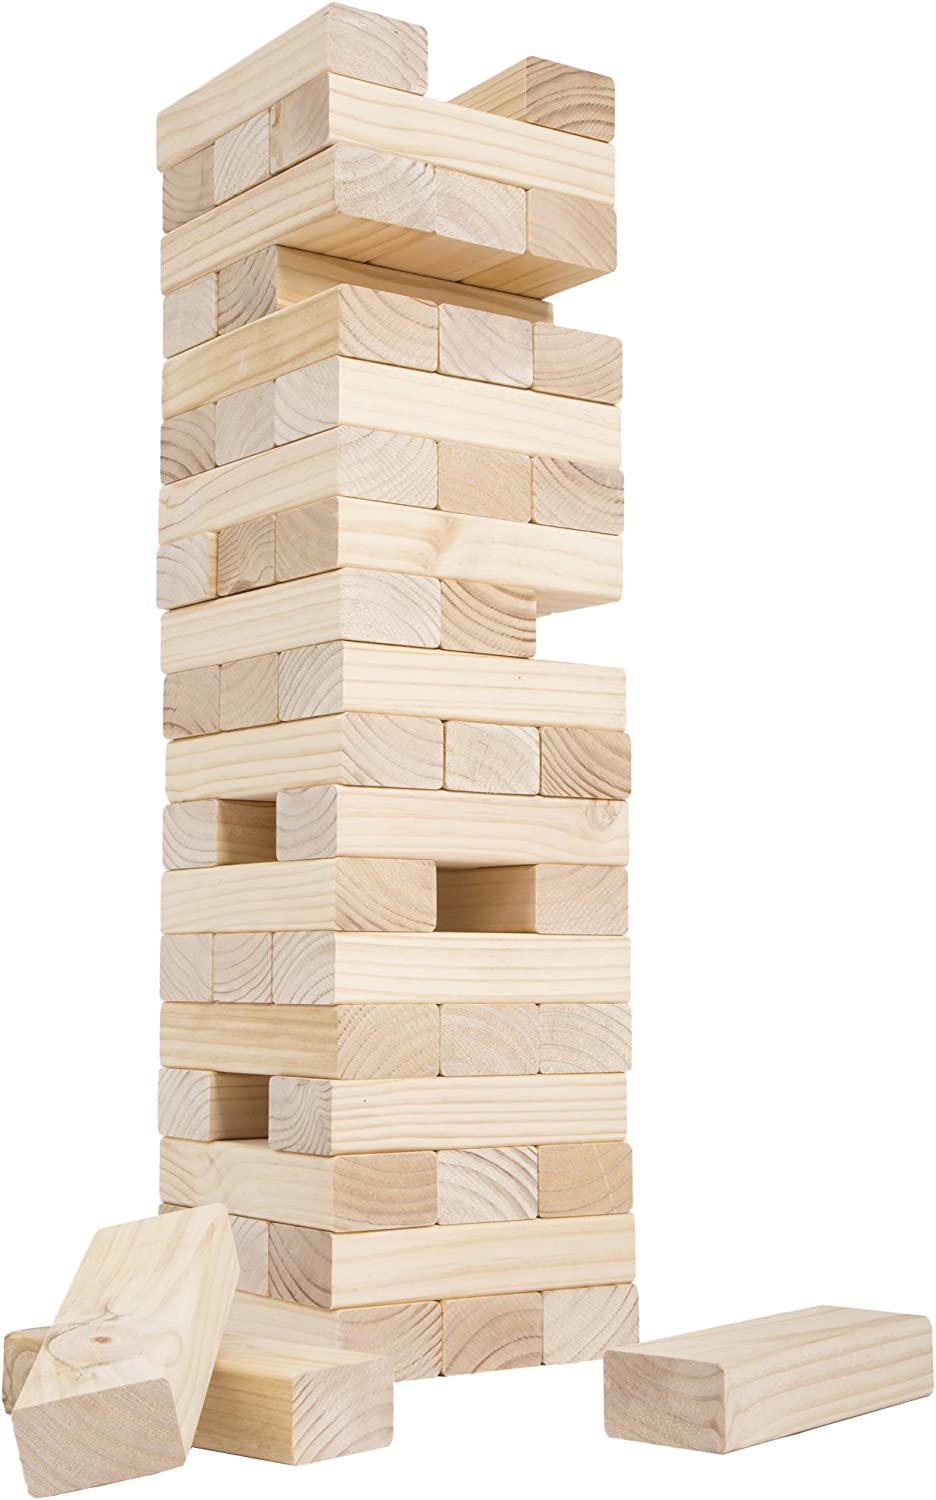 Classic Giant Wooden Blocks Tower Yard Game Stacking store OFFicial site G Outdoors